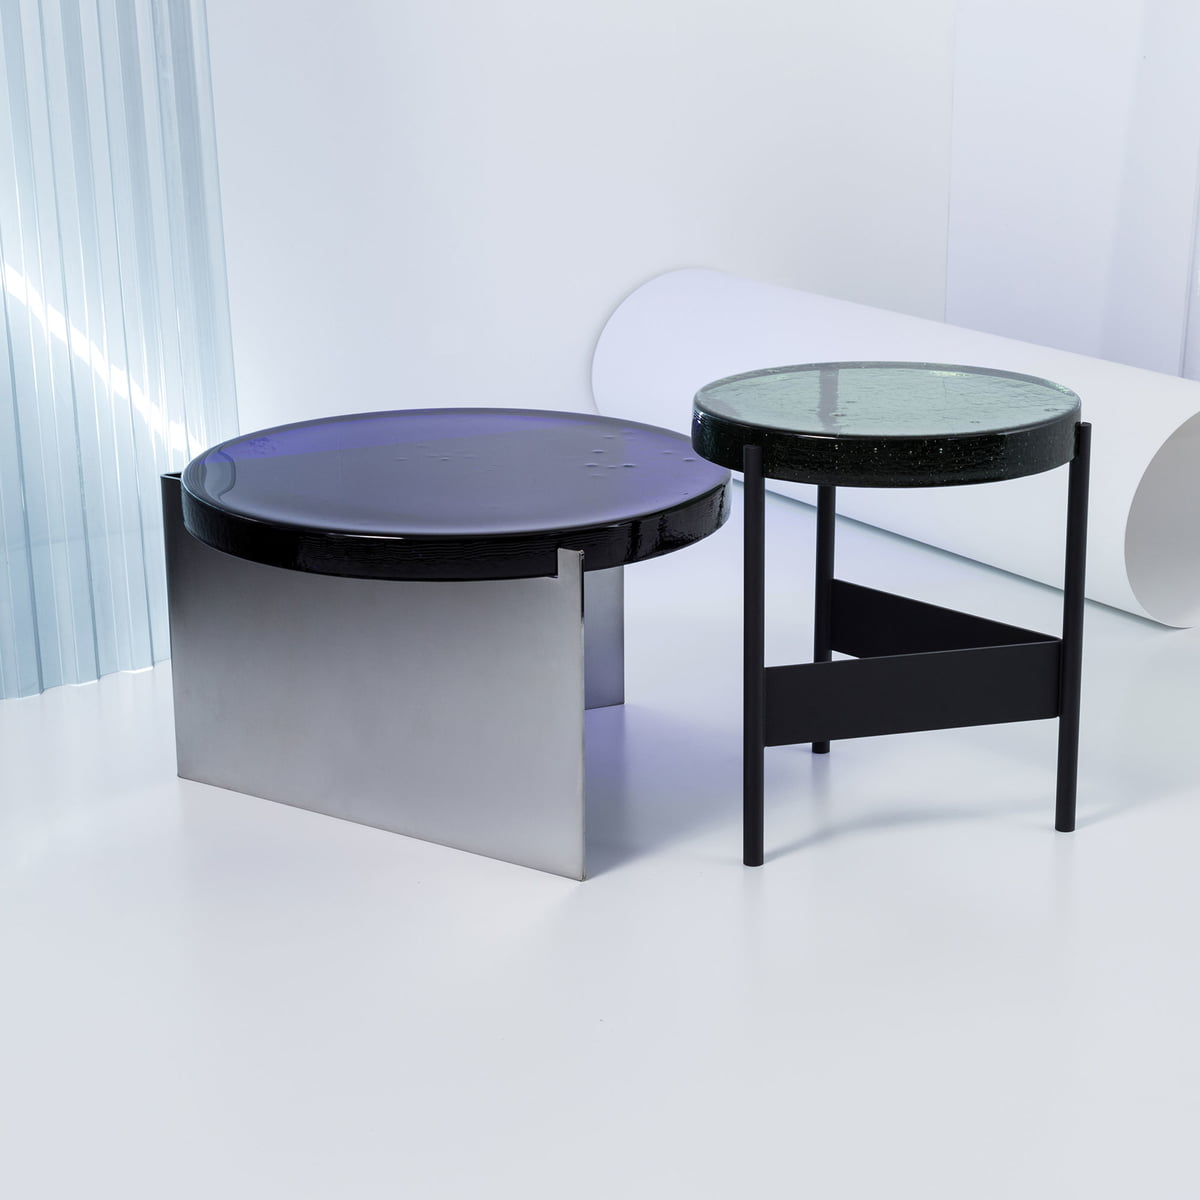 Alwa Two Tables Sebastian Herkner Designer Furniture Sku: 747-230-10011